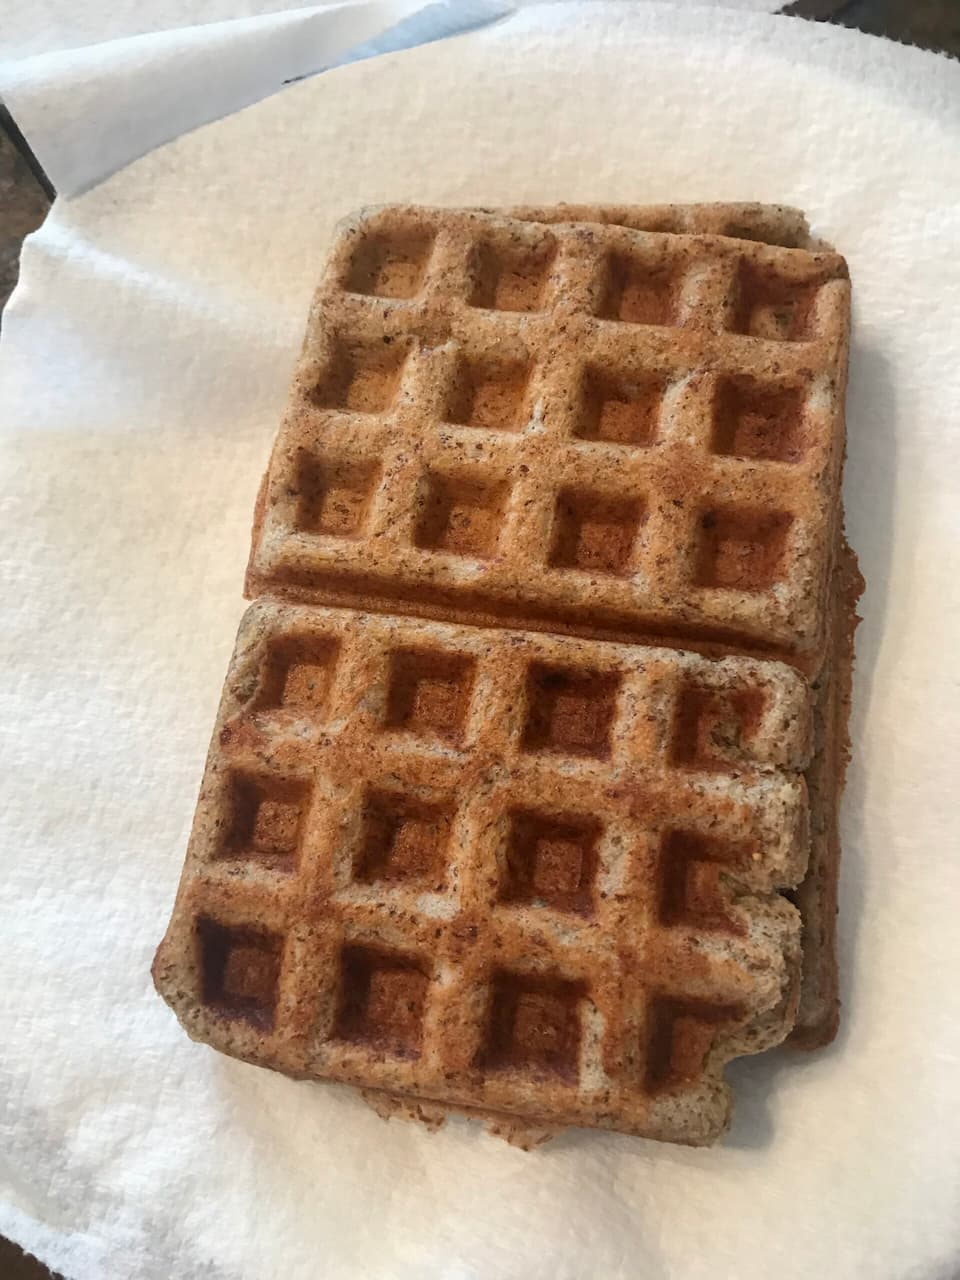 Gluten Free Waffle recipe for the 21 day reset